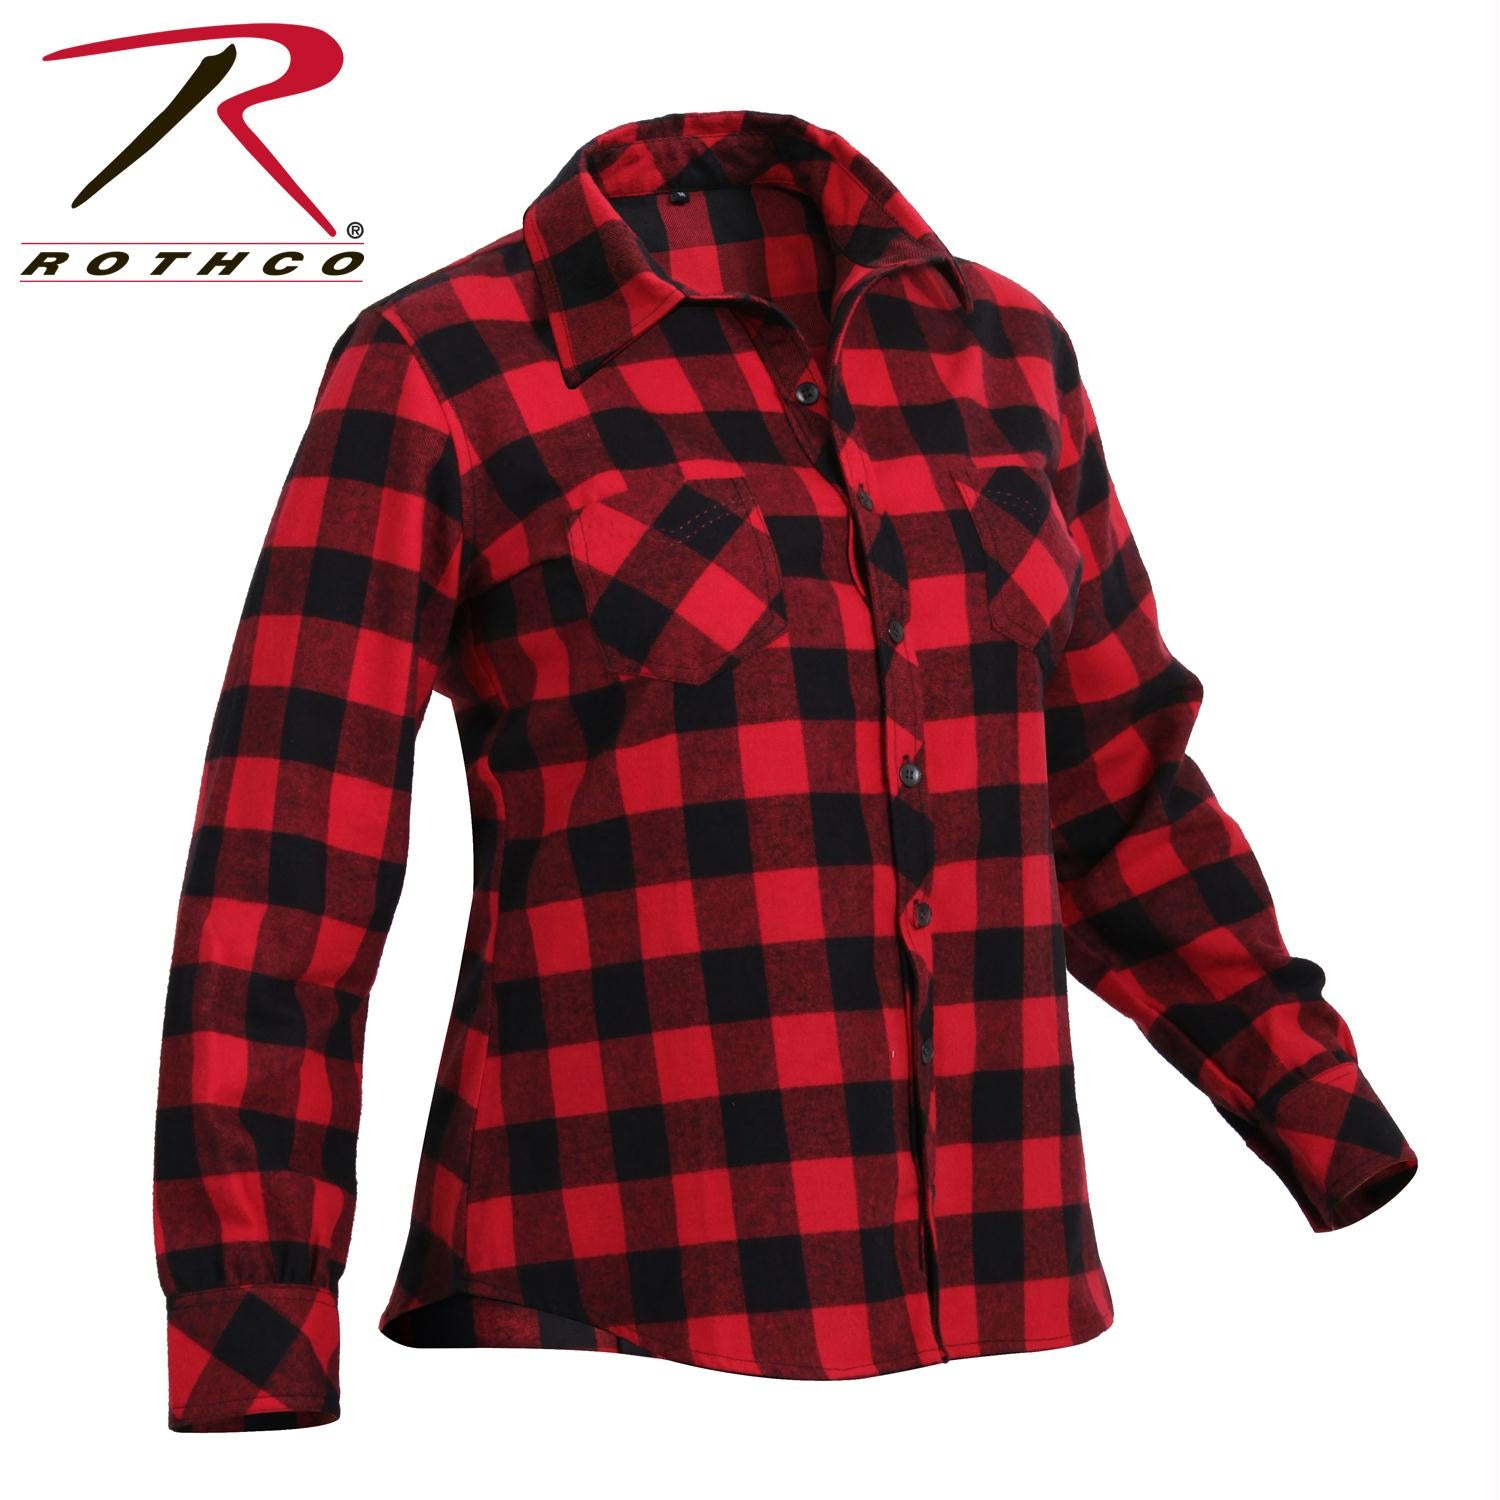 Rothco Womens Plaid Flannel Shirt - Red / Black / L